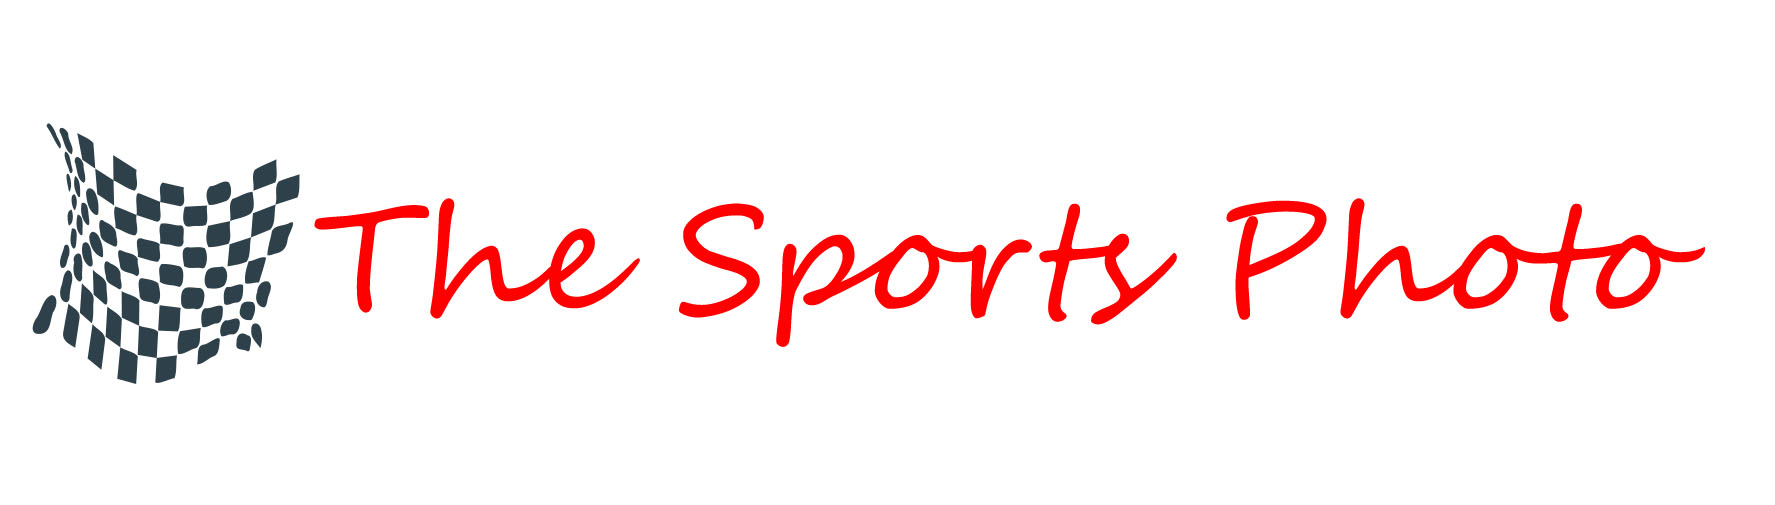 The Sports Photo